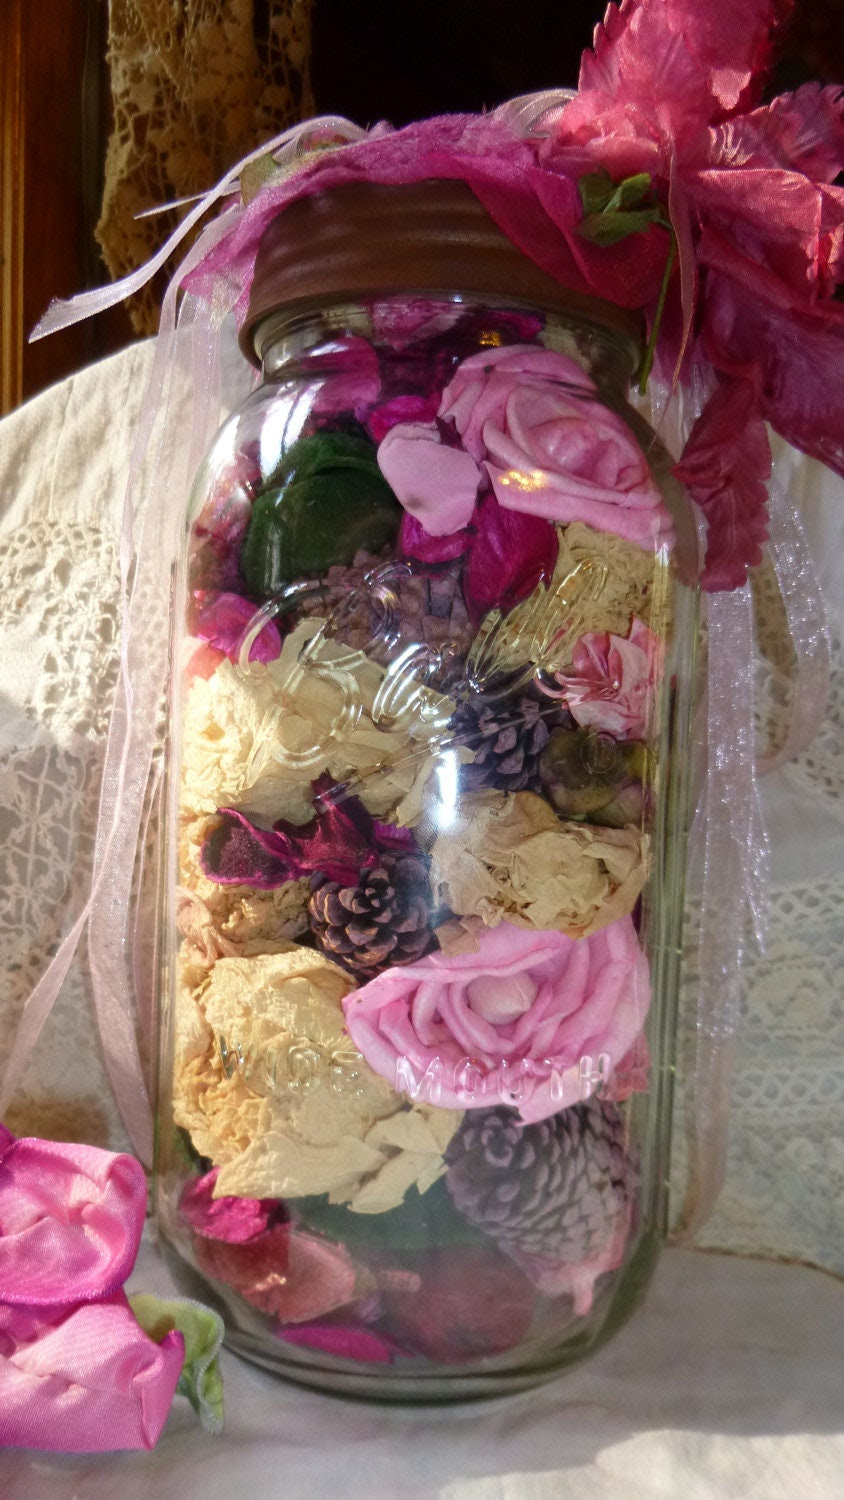 Rose Filled Mason Jar, Pink, Altered, Floral, Table Decor, Romantic Country, Shabby Chic, OOAK, Boutique, Fushia, Blossom, Victorian